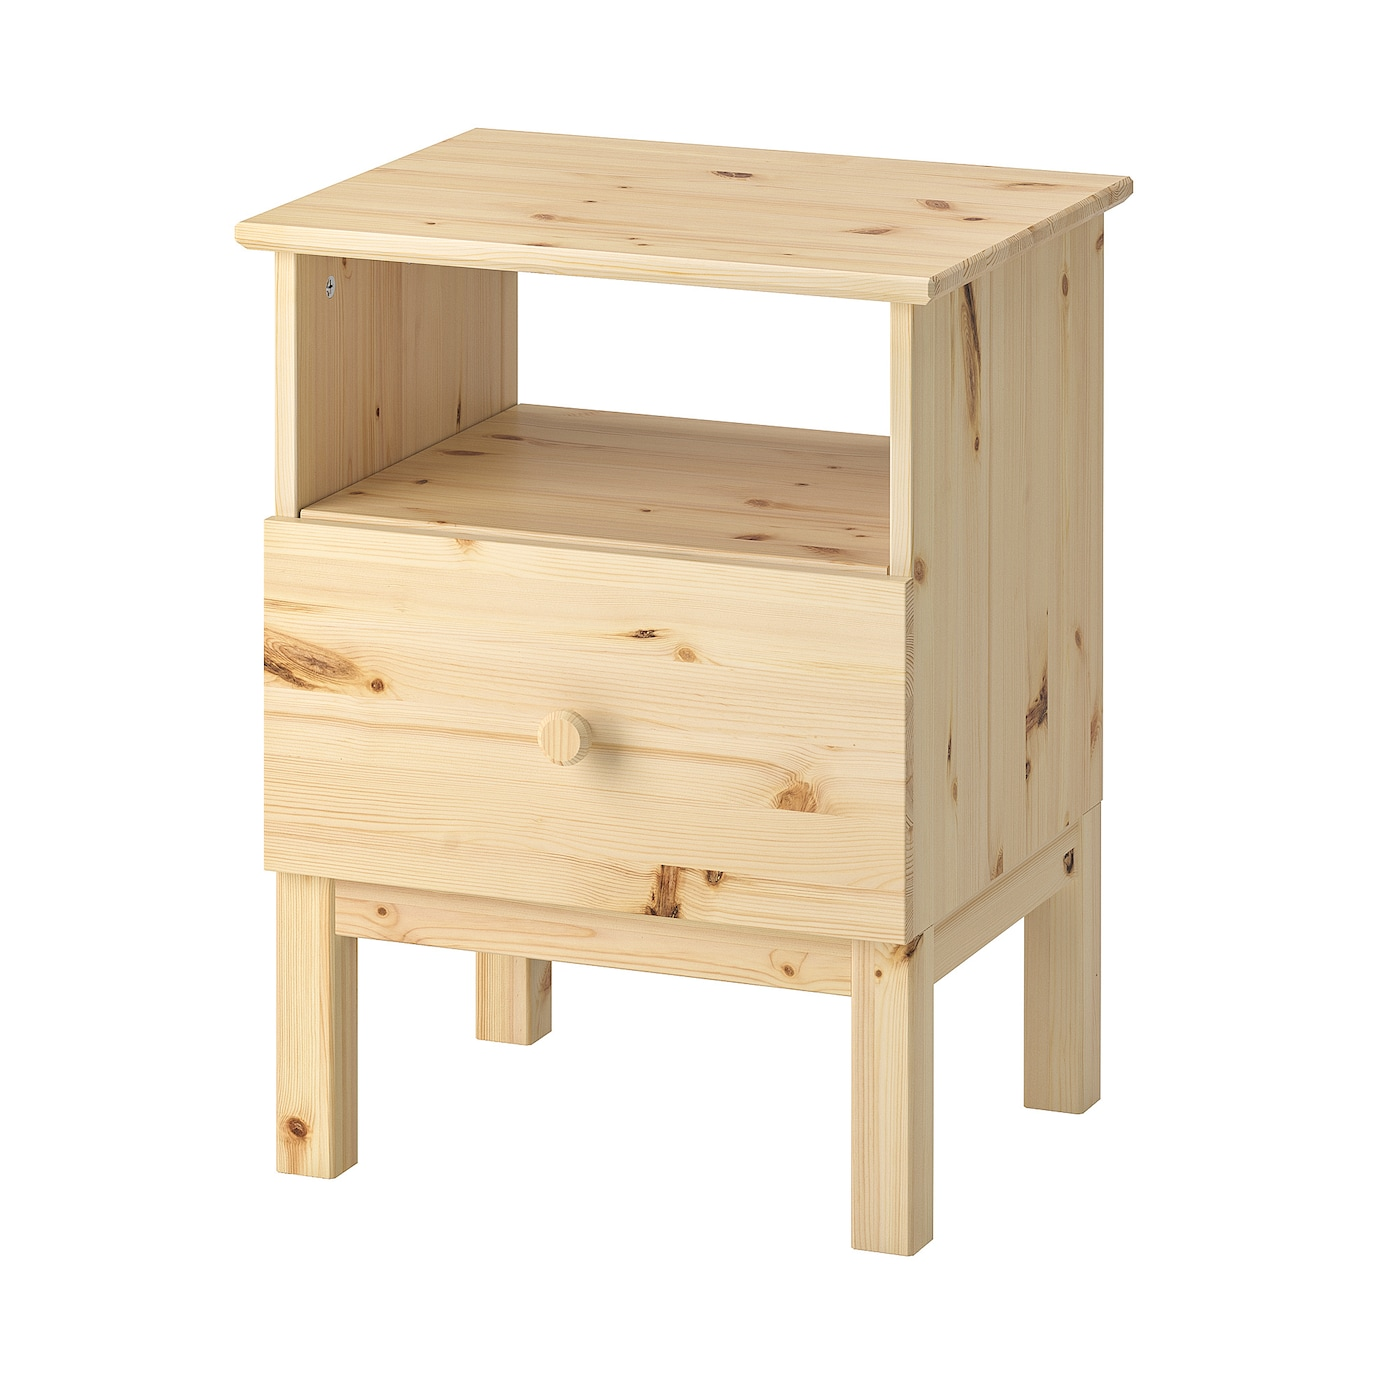 Ikea Tarva Bedside Table Made Of Solid Wood Which Is A Hardwearing And Warm Natural